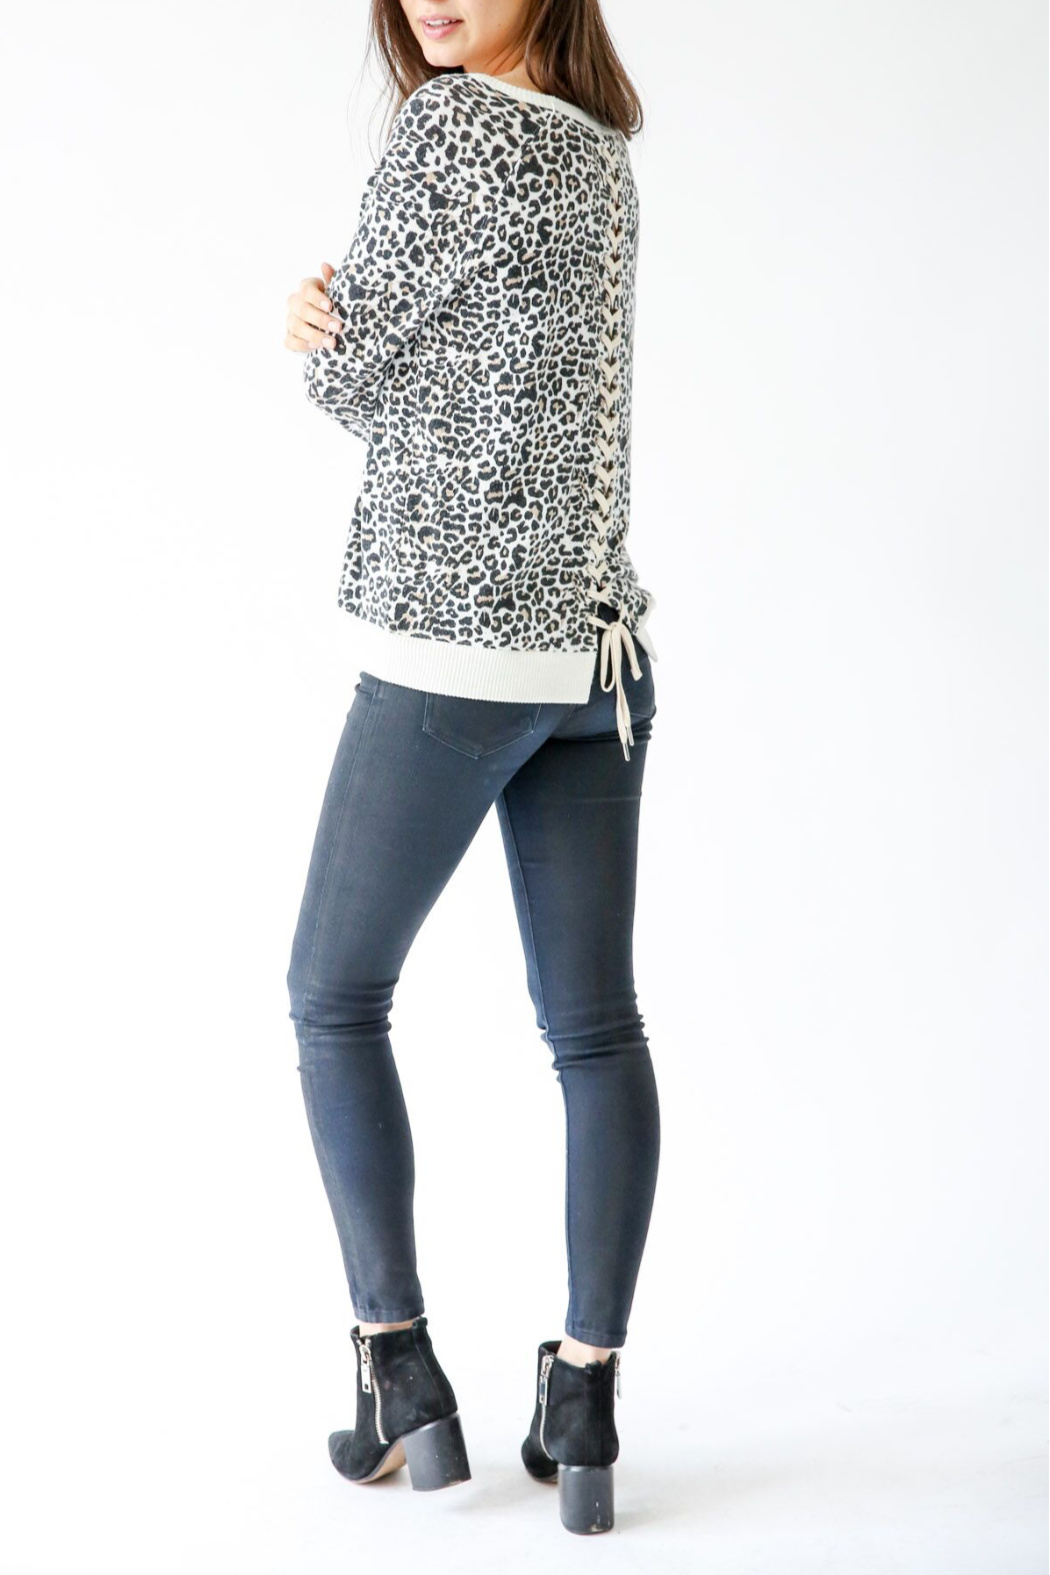 Six Fifty Leopard Cozy Pullover w lace up back - Main Image